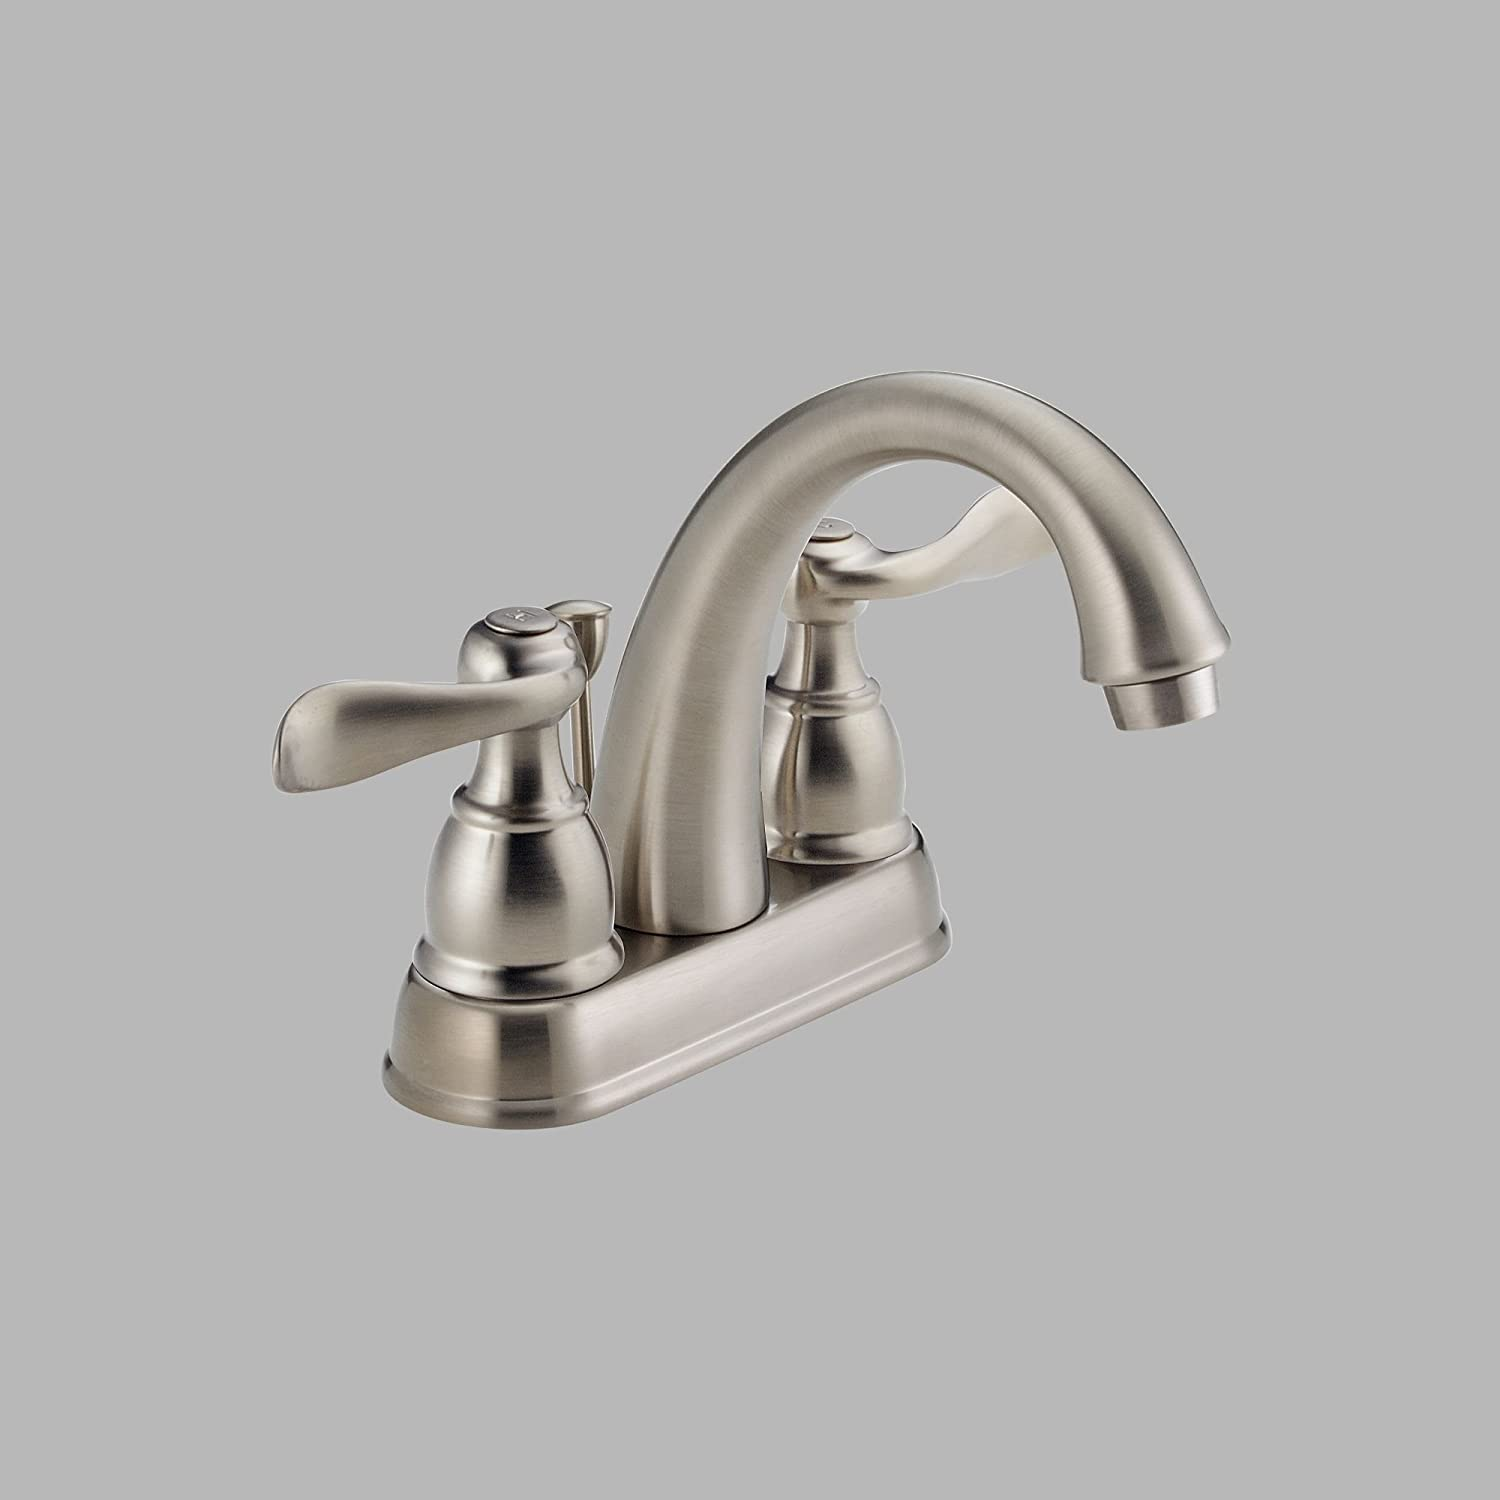 Delta Faucet Windemere 2-Handle Centerset Bathroom Faucet with Drain Assembly, Brushed Nickel 25996LF-BN